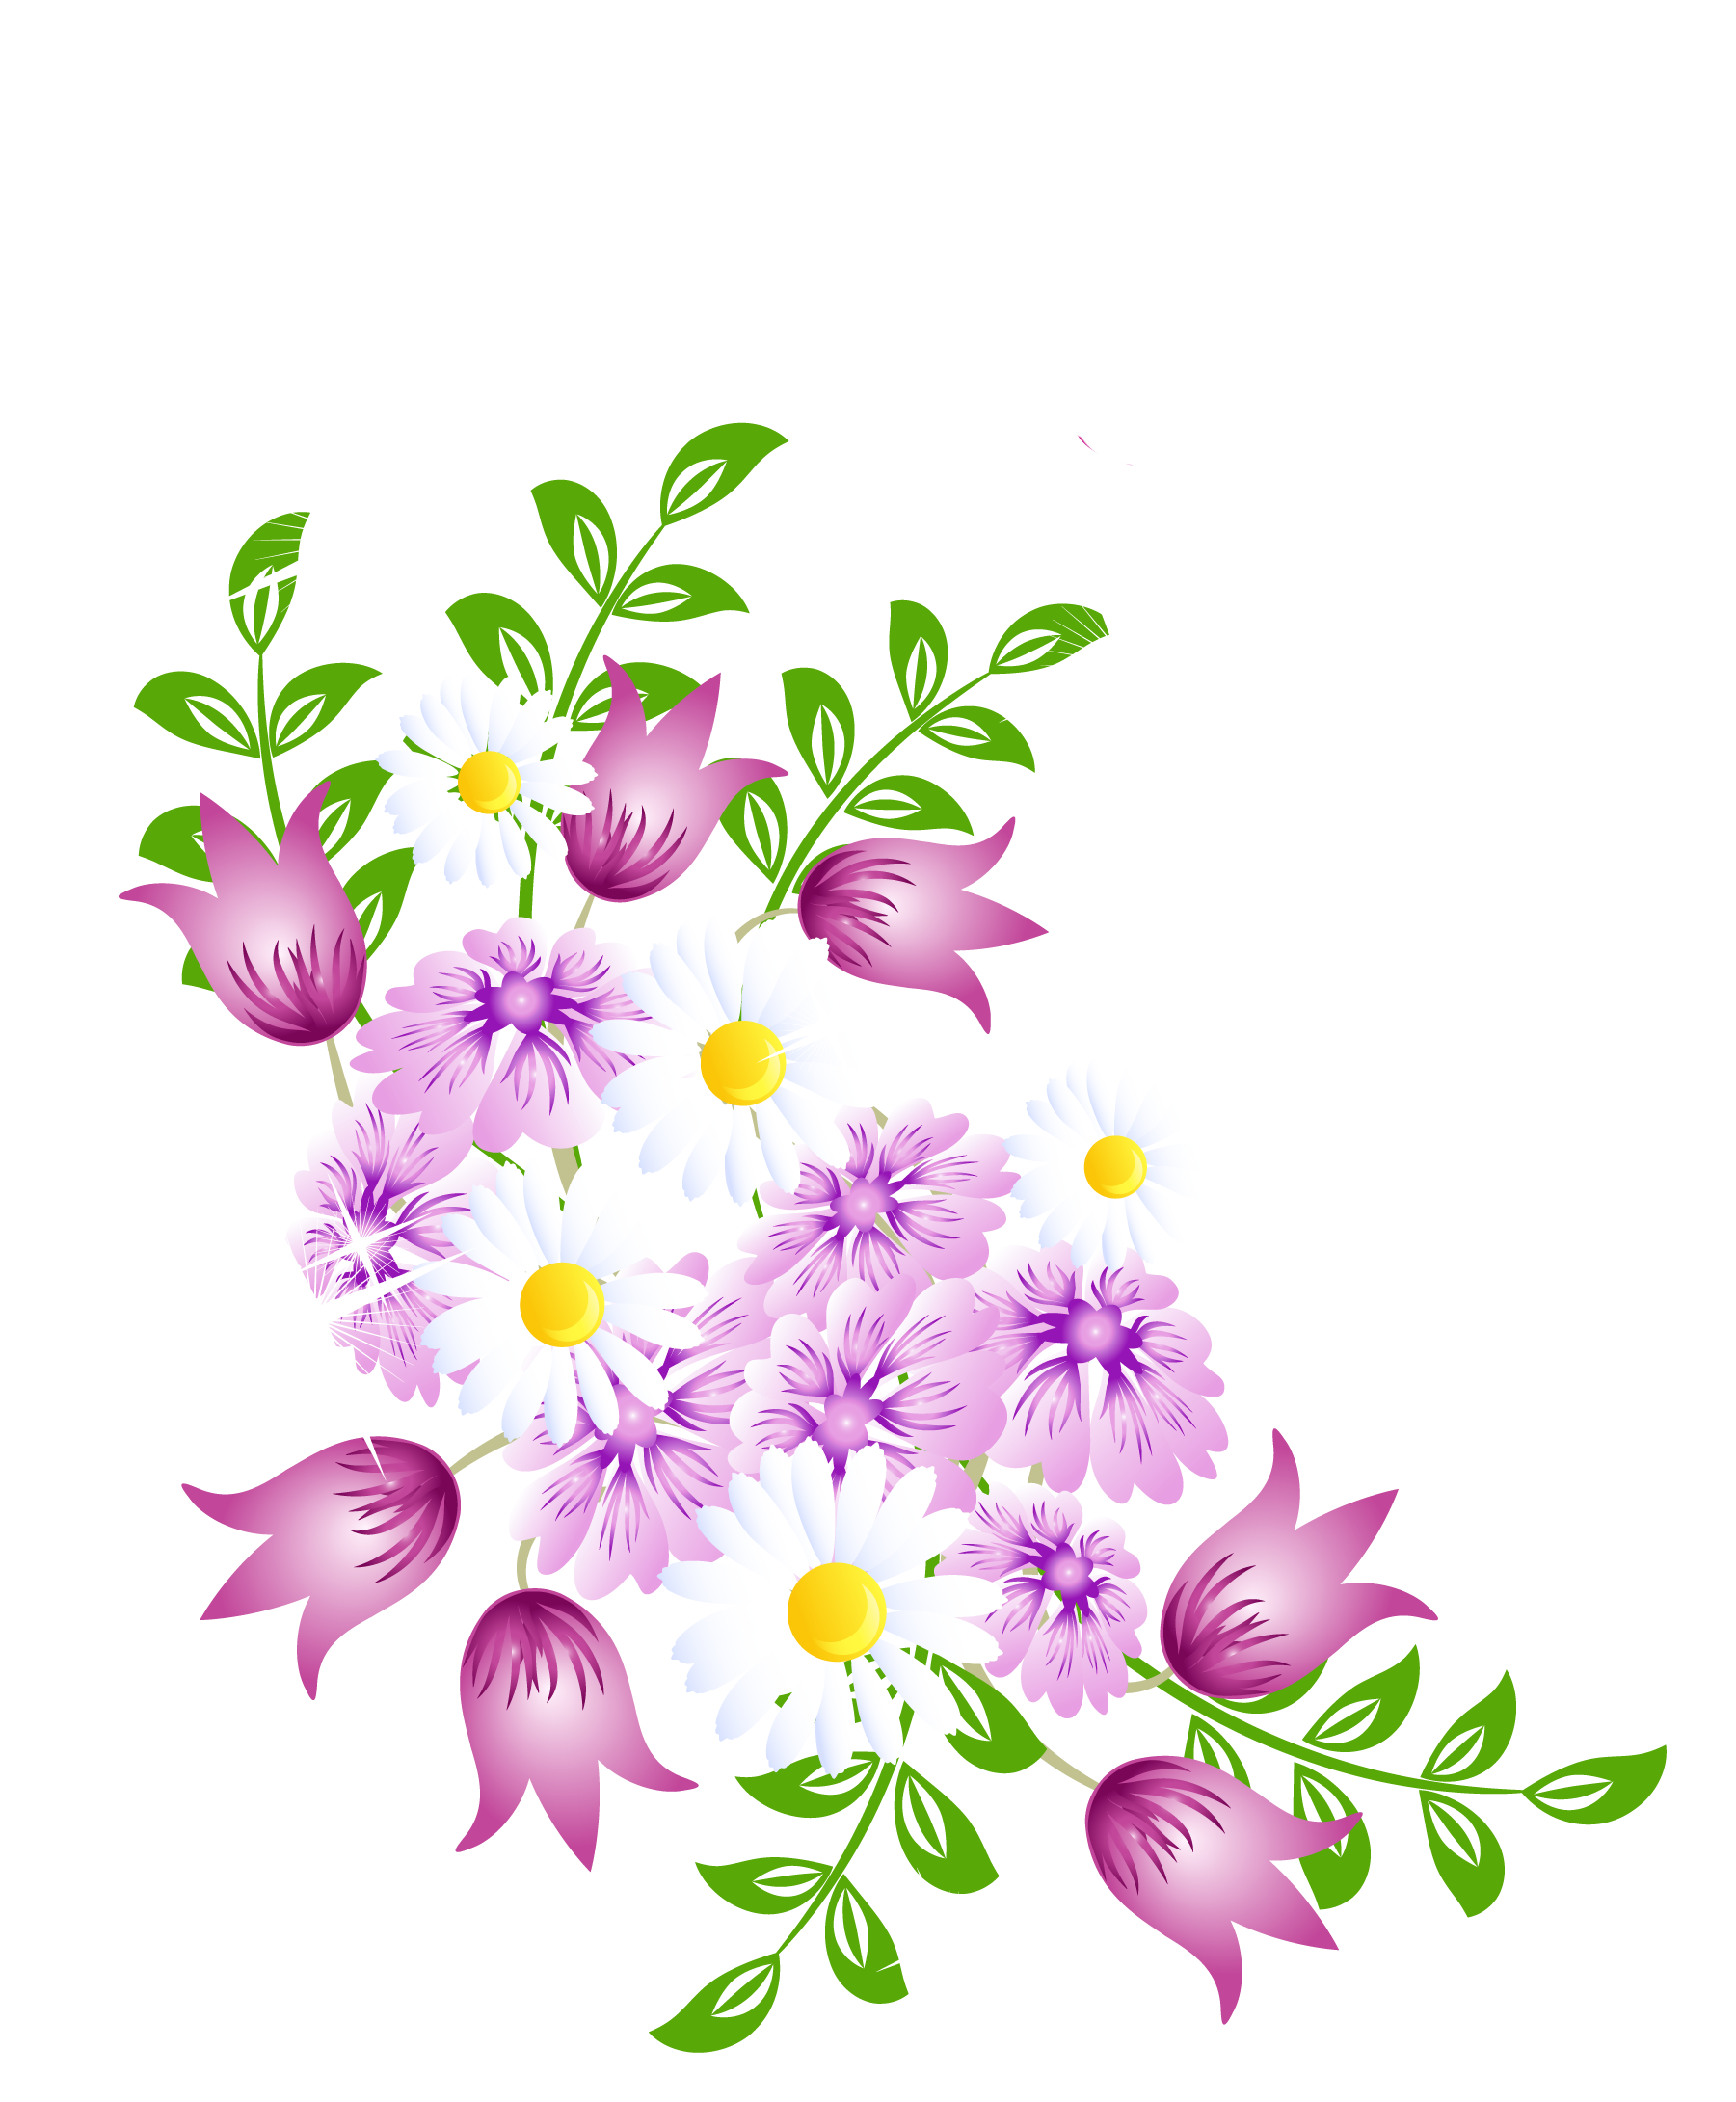 Flowers decor picture clipart. Spring flower png